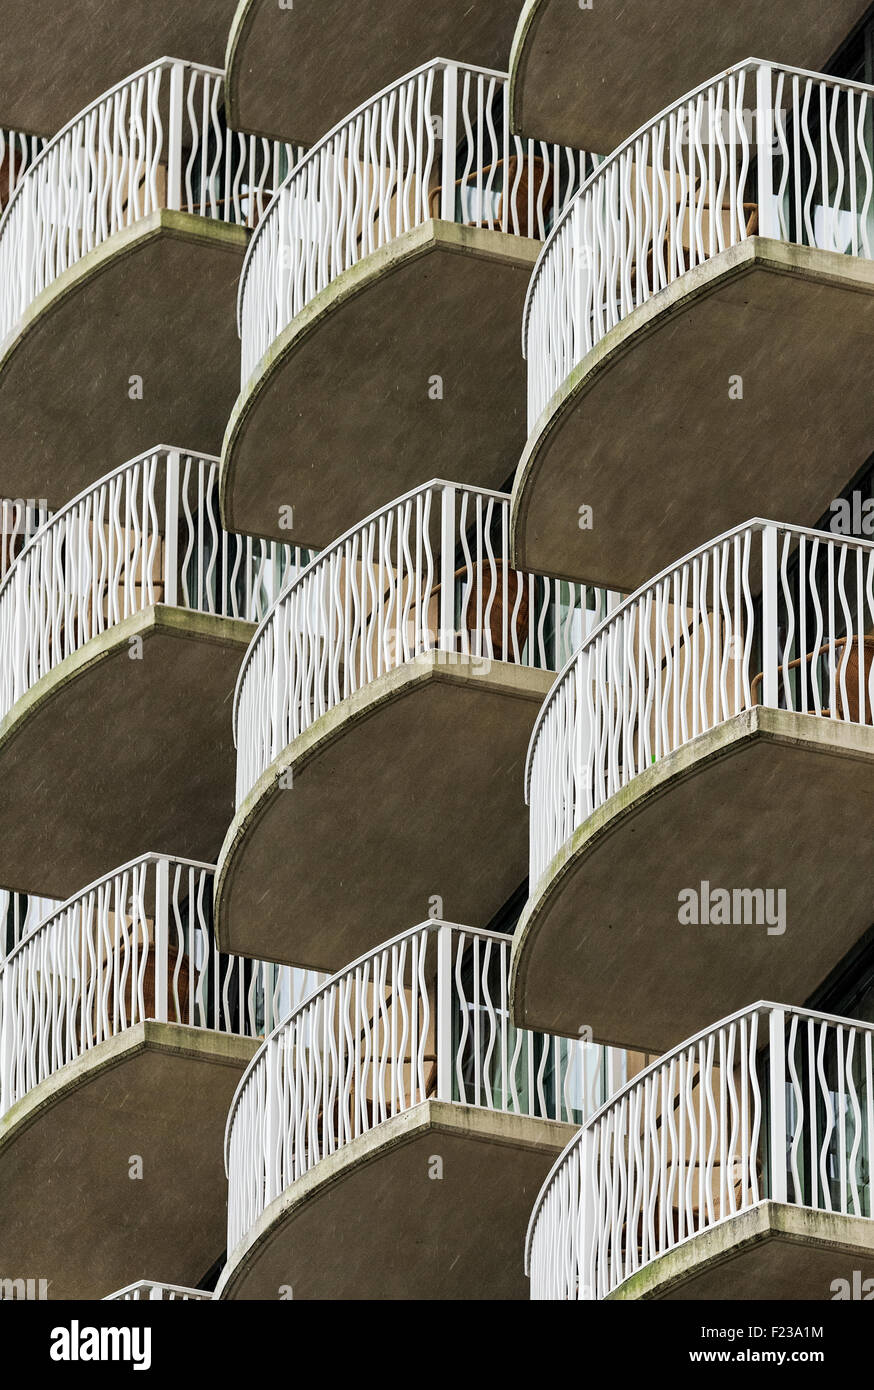 Pattern of condo balconies on a hi-rise building. - Stock Image